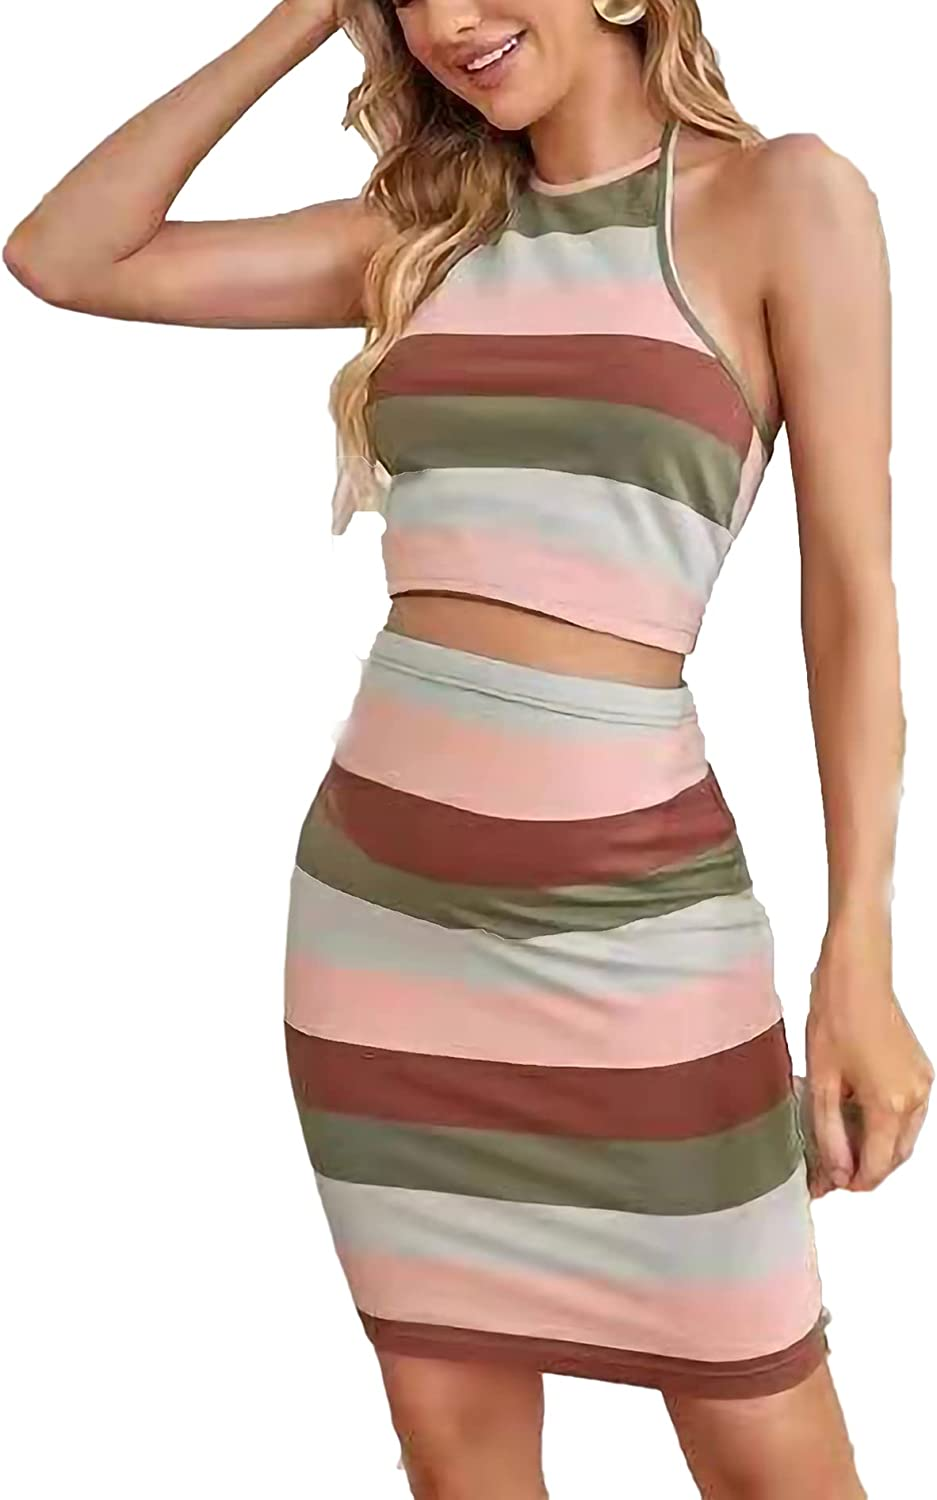 Women's 2 Pieces Striped Halter Crop Top and Mini Skirt Summer Outfit Set